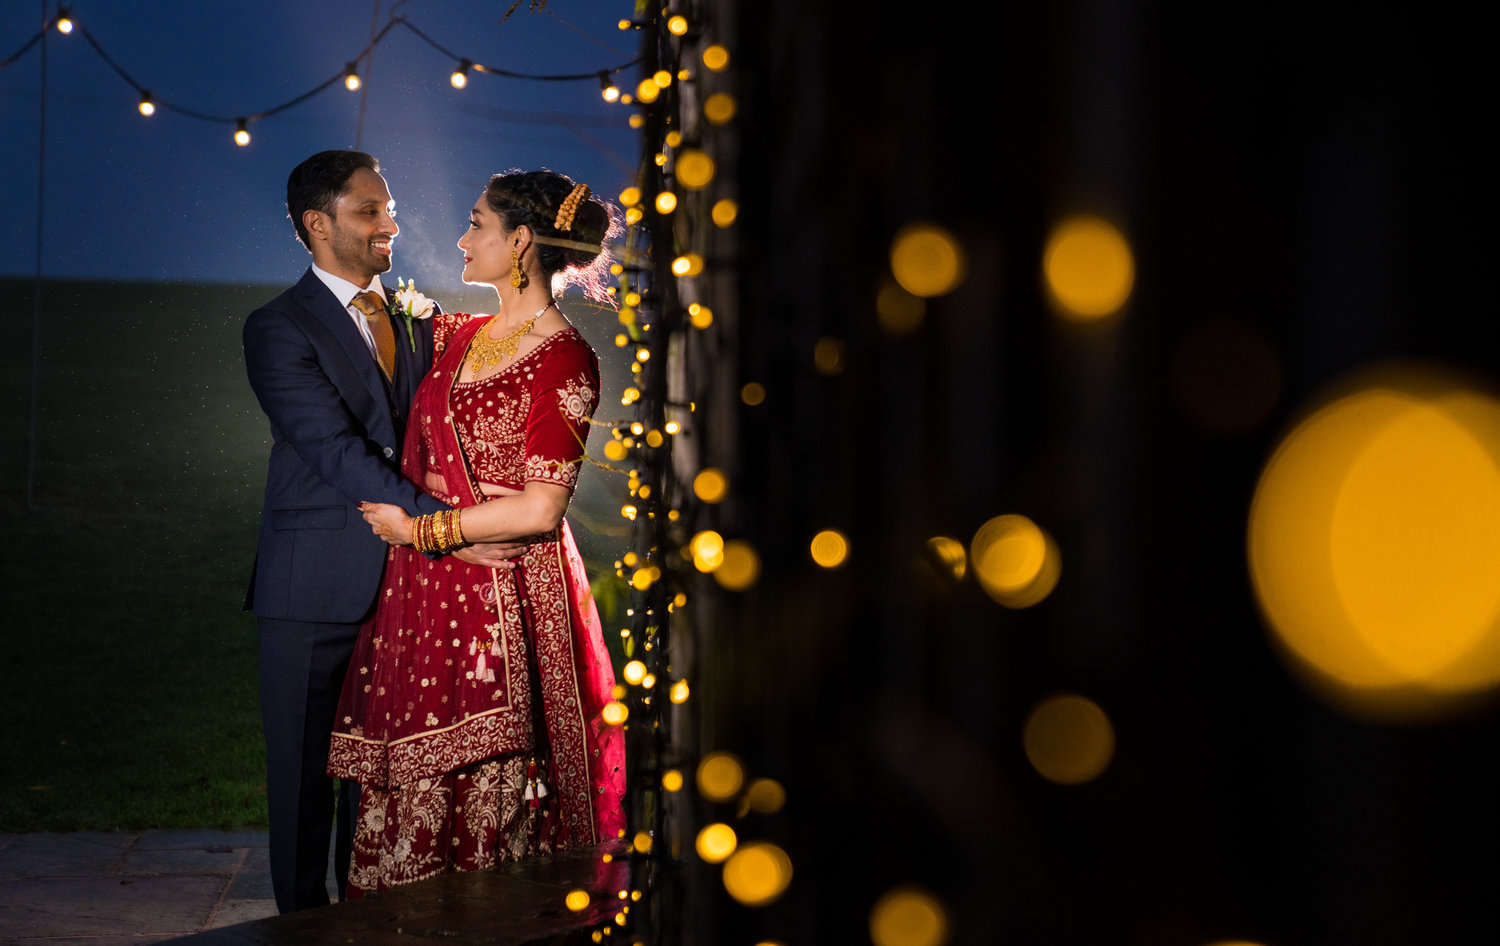 Wedding Photos and Videos | Prices & Packages | Hampshire, London, Kent